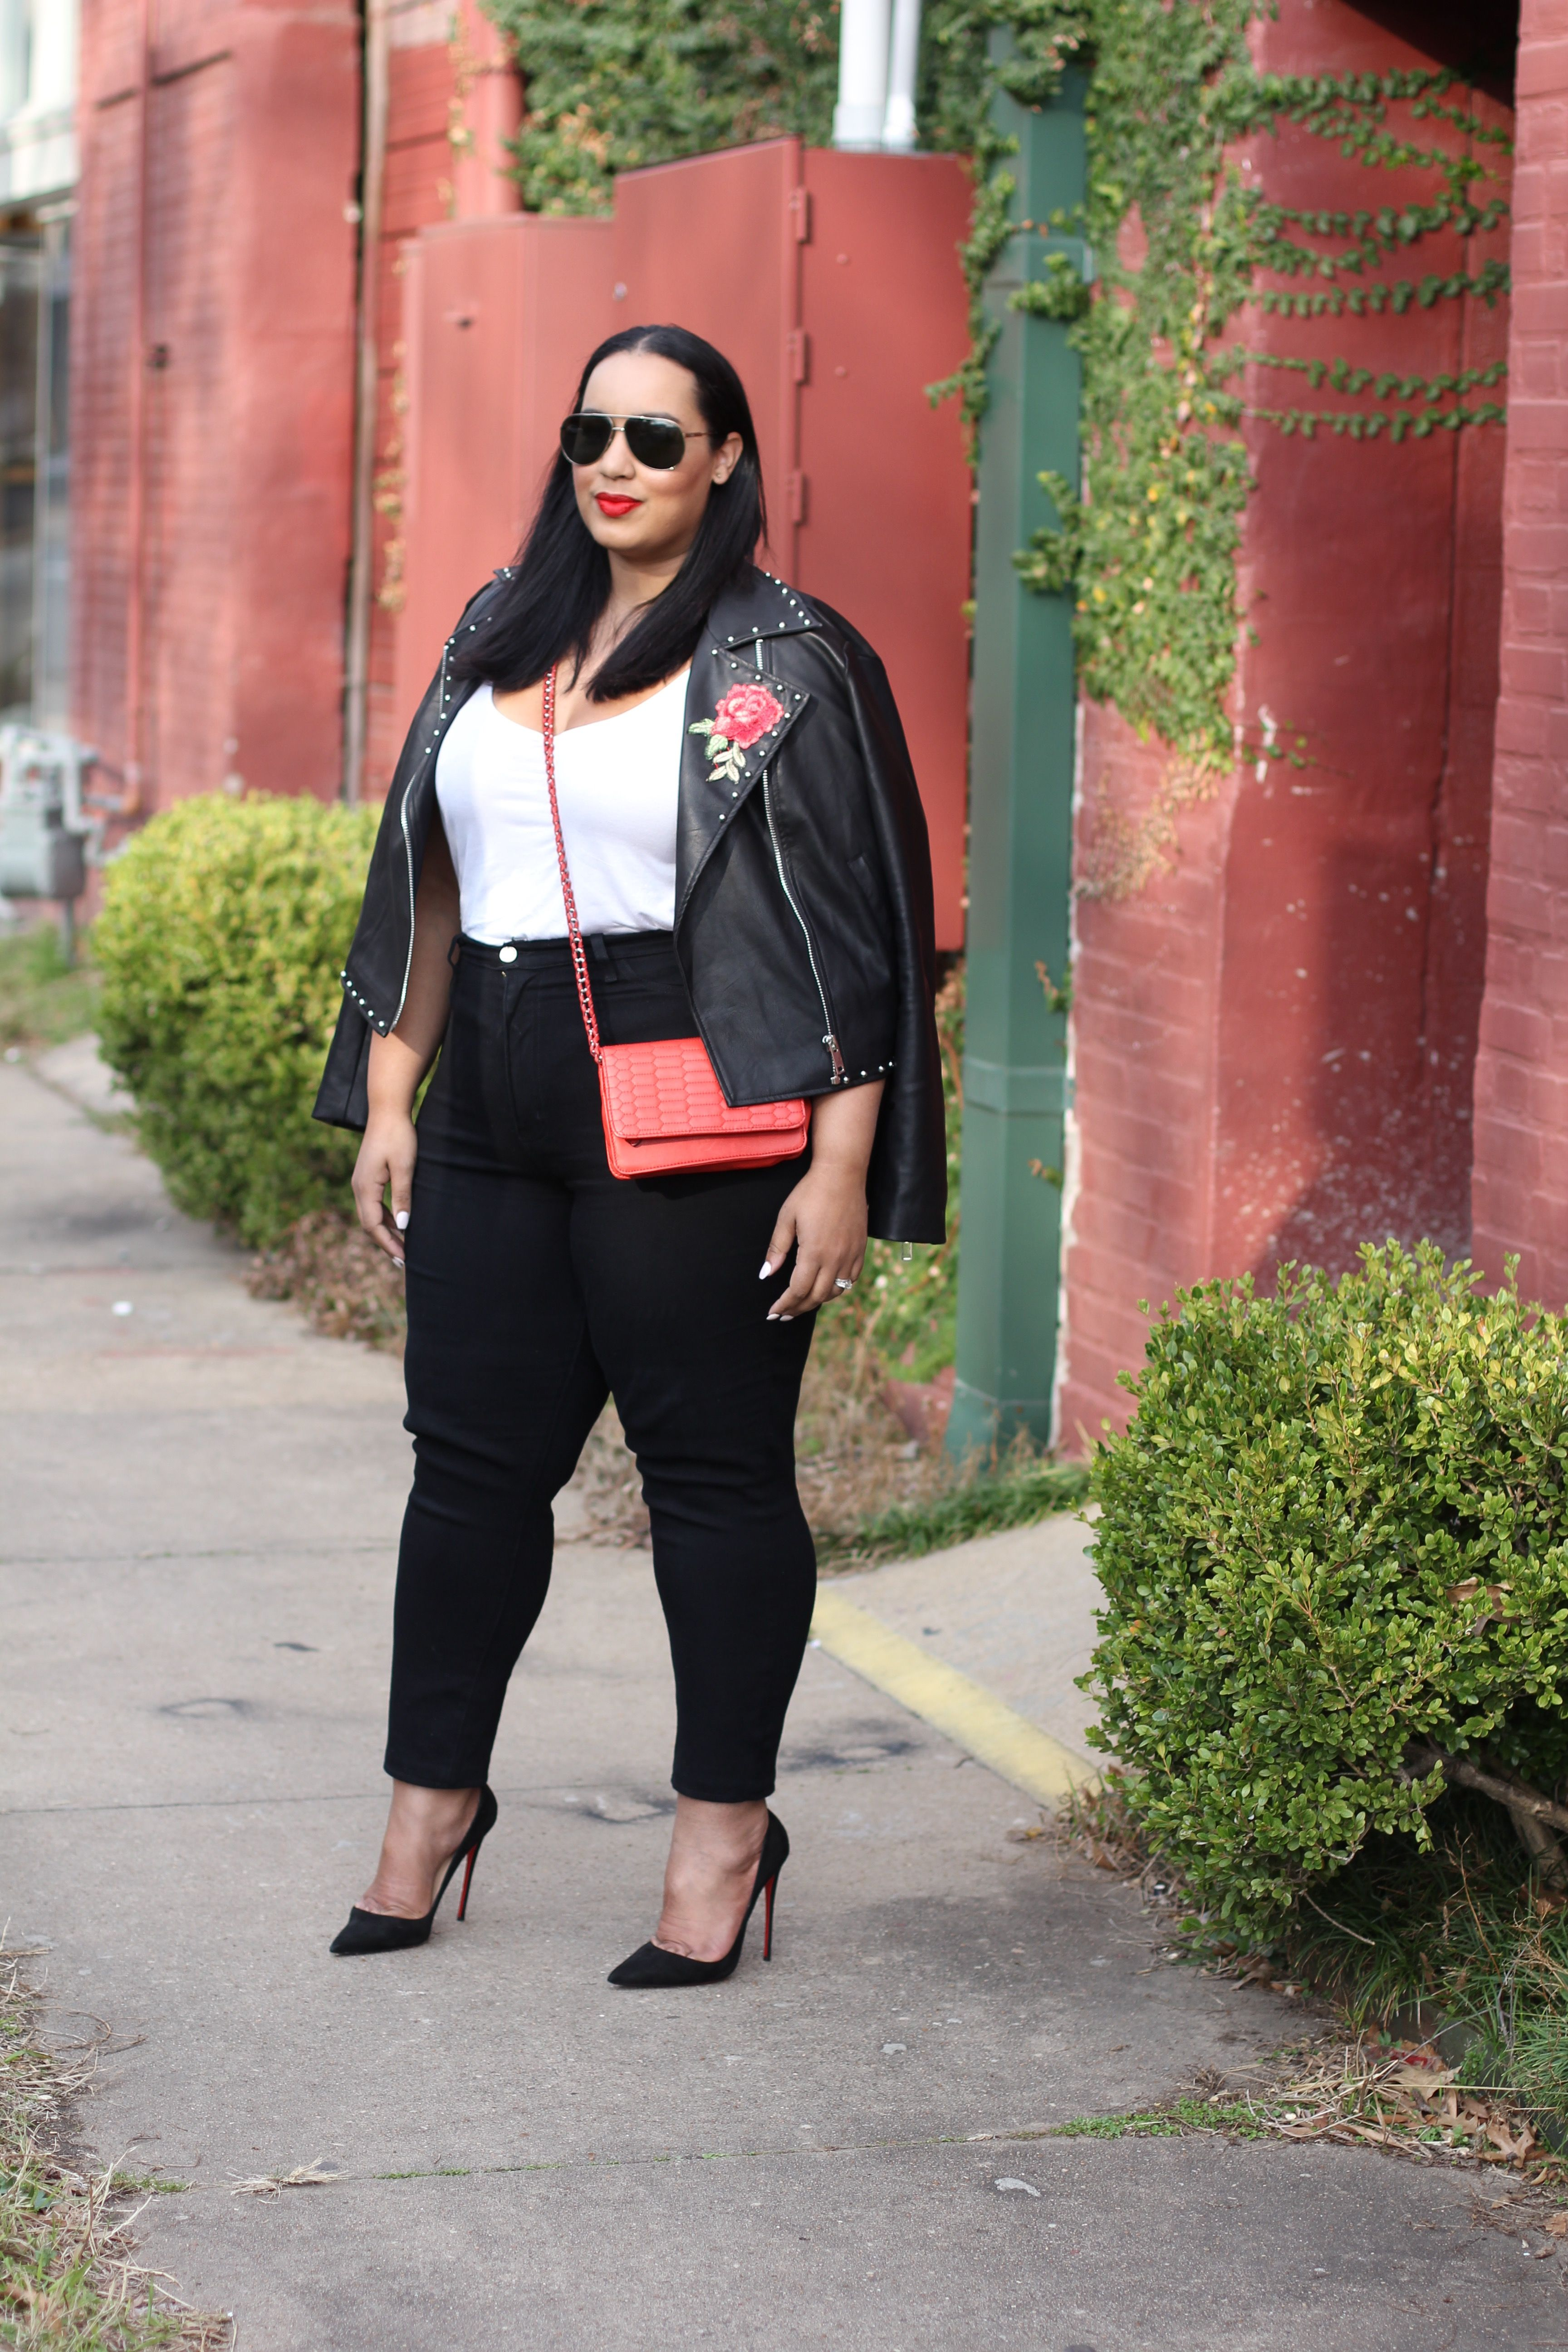 Hello Moto Beauticurve Plus Size Outfits Spring Outfits Casual Curvy Outfits [ 5184 x 3456 Pixel ]